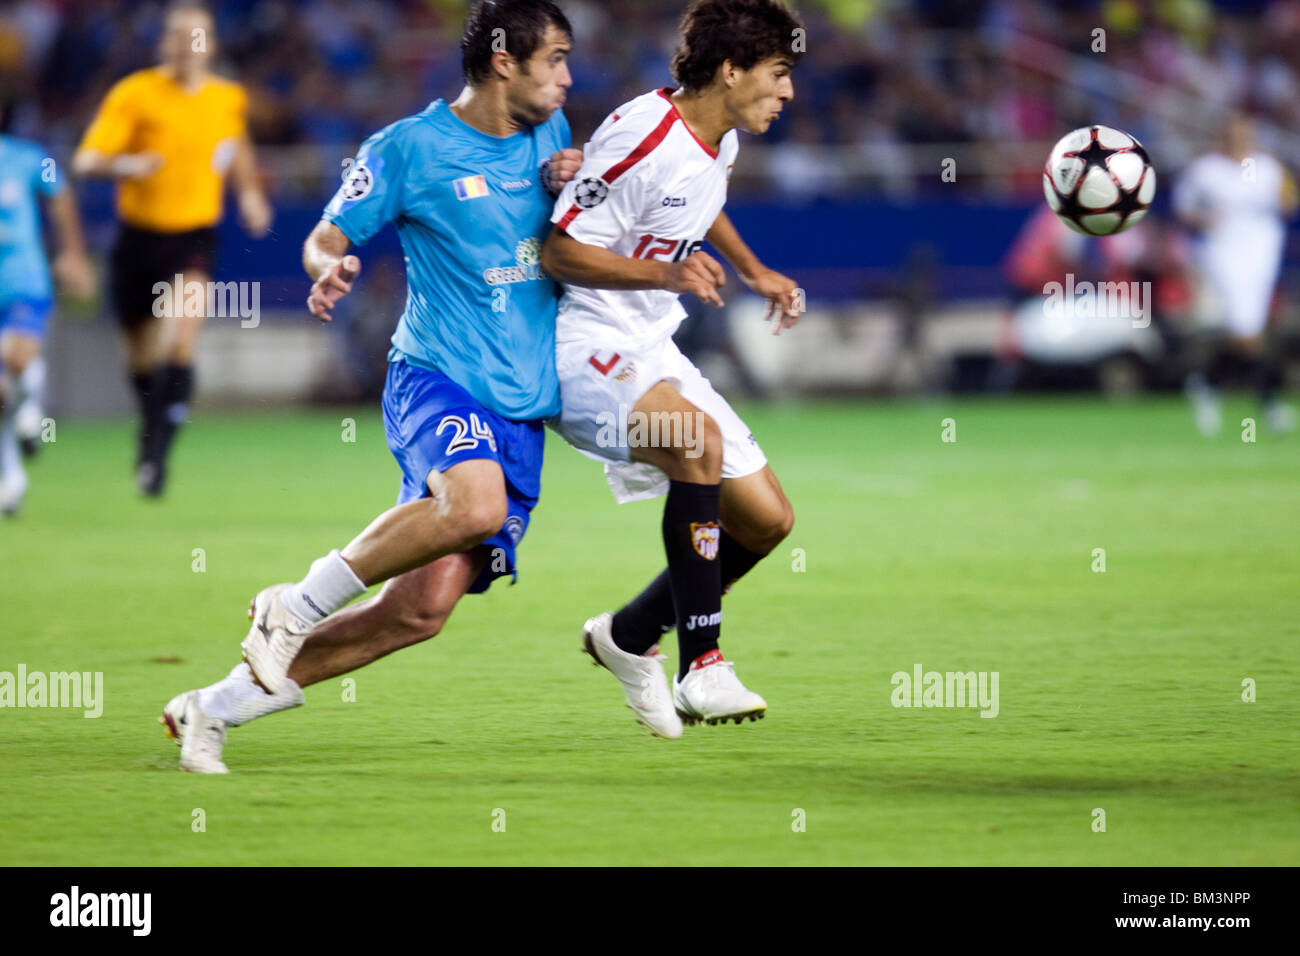 Perotti and Vasile Maftei fighting for the ball. - Stock Image